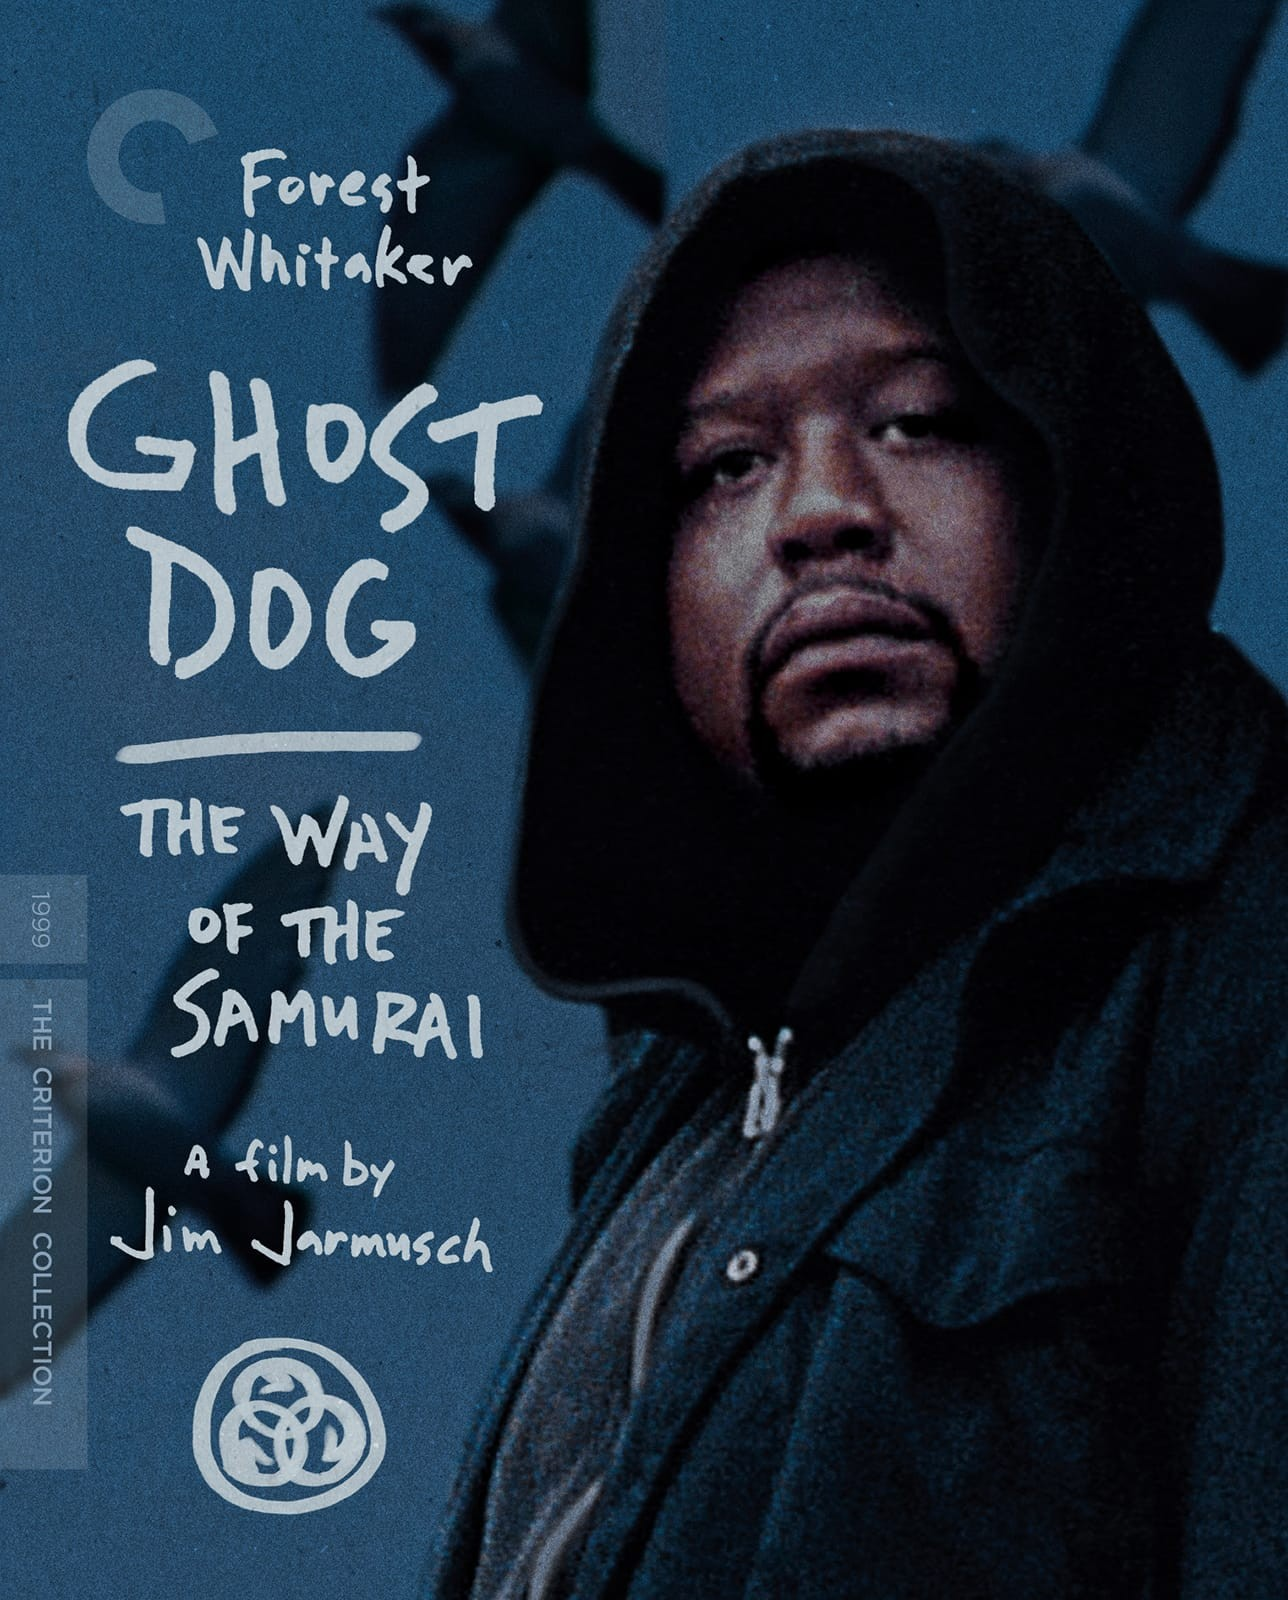 Ghost Dog: The Way of the Samurai (1999) | The Criterion Collection